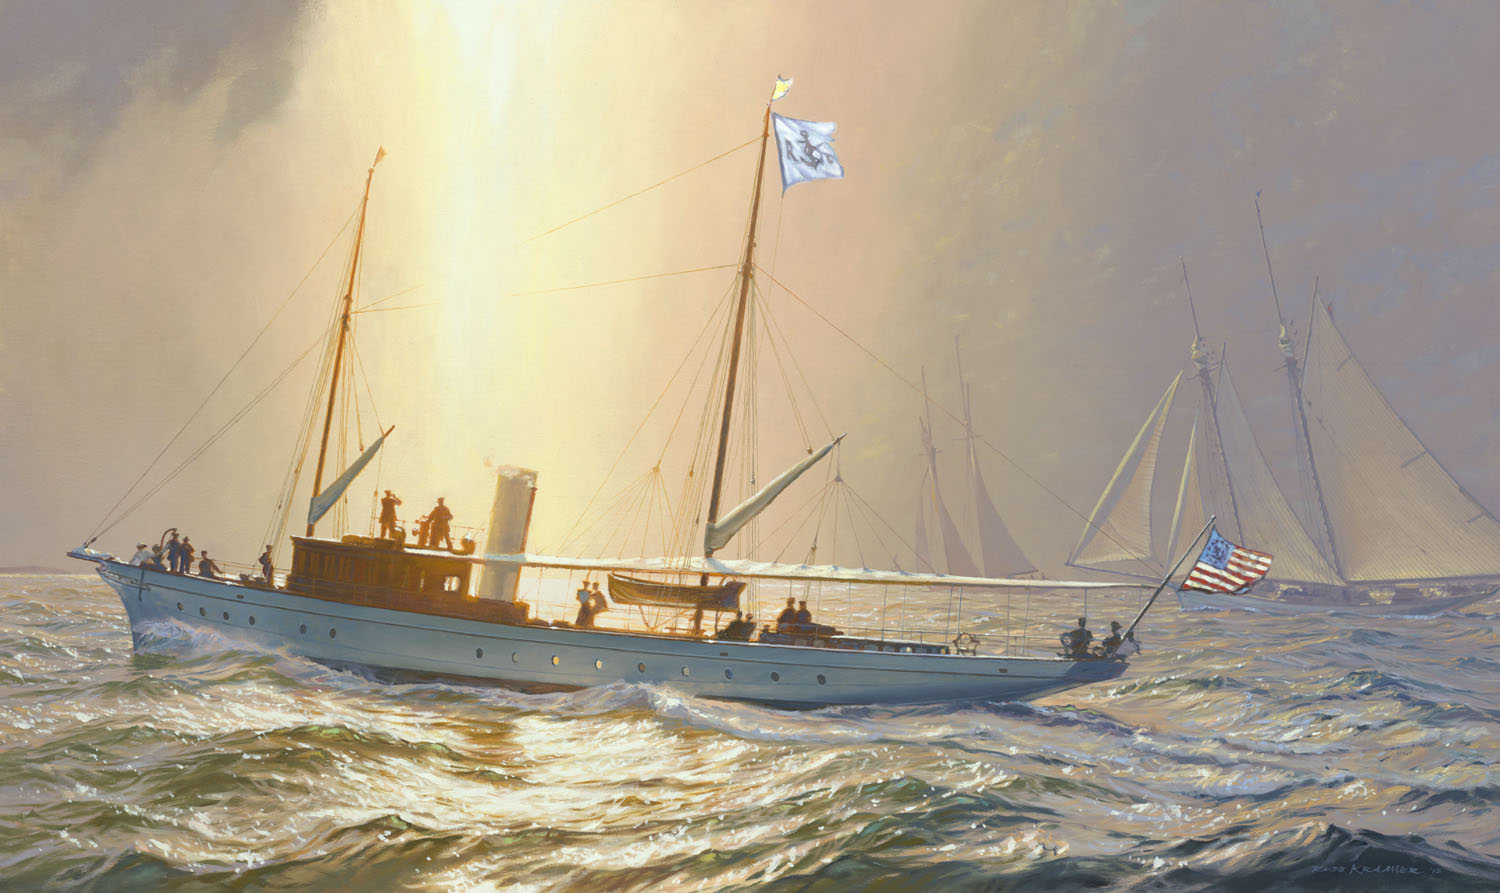 sunset-sail, 4/8/13, 2:31 PM,  8C, 7800x13415 (2342+1656), 150%, Custom,  1/30 s, R38.0, G30.1, B48.6